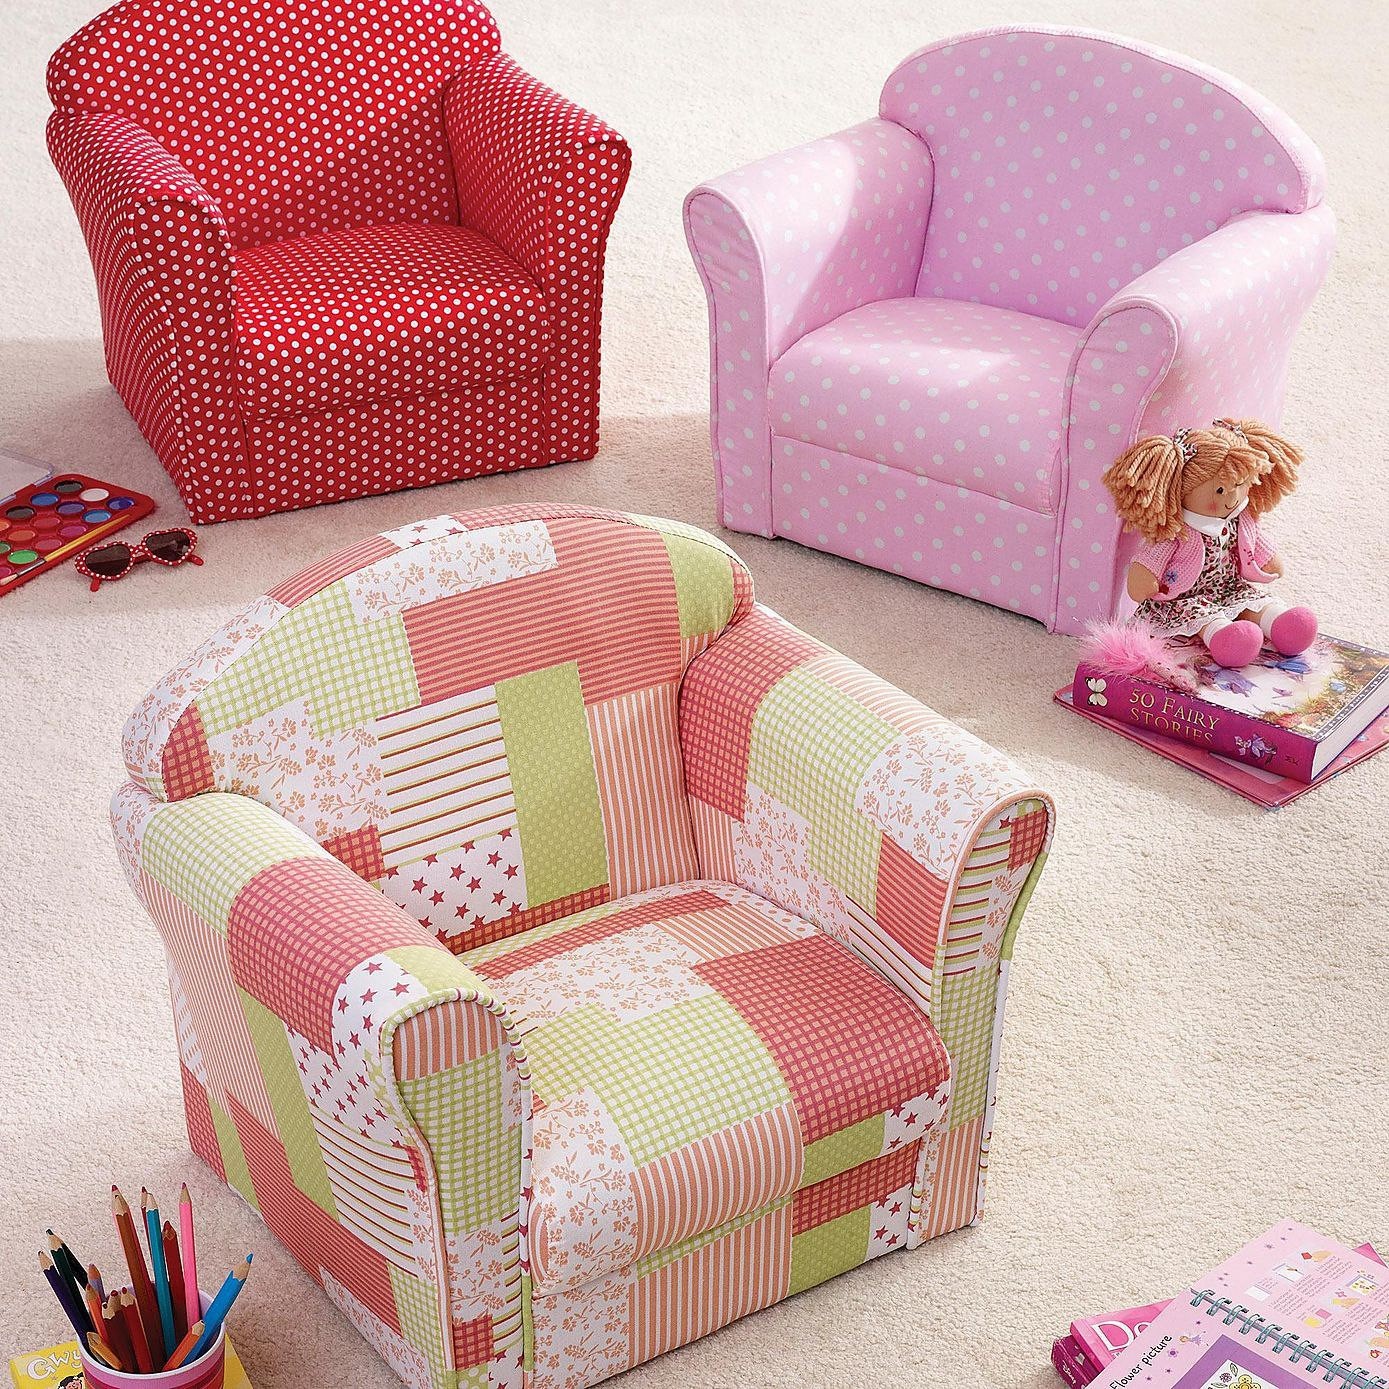 chair covers dunelm mill pair of chairs childrens bedroom furniture psoriasisguru